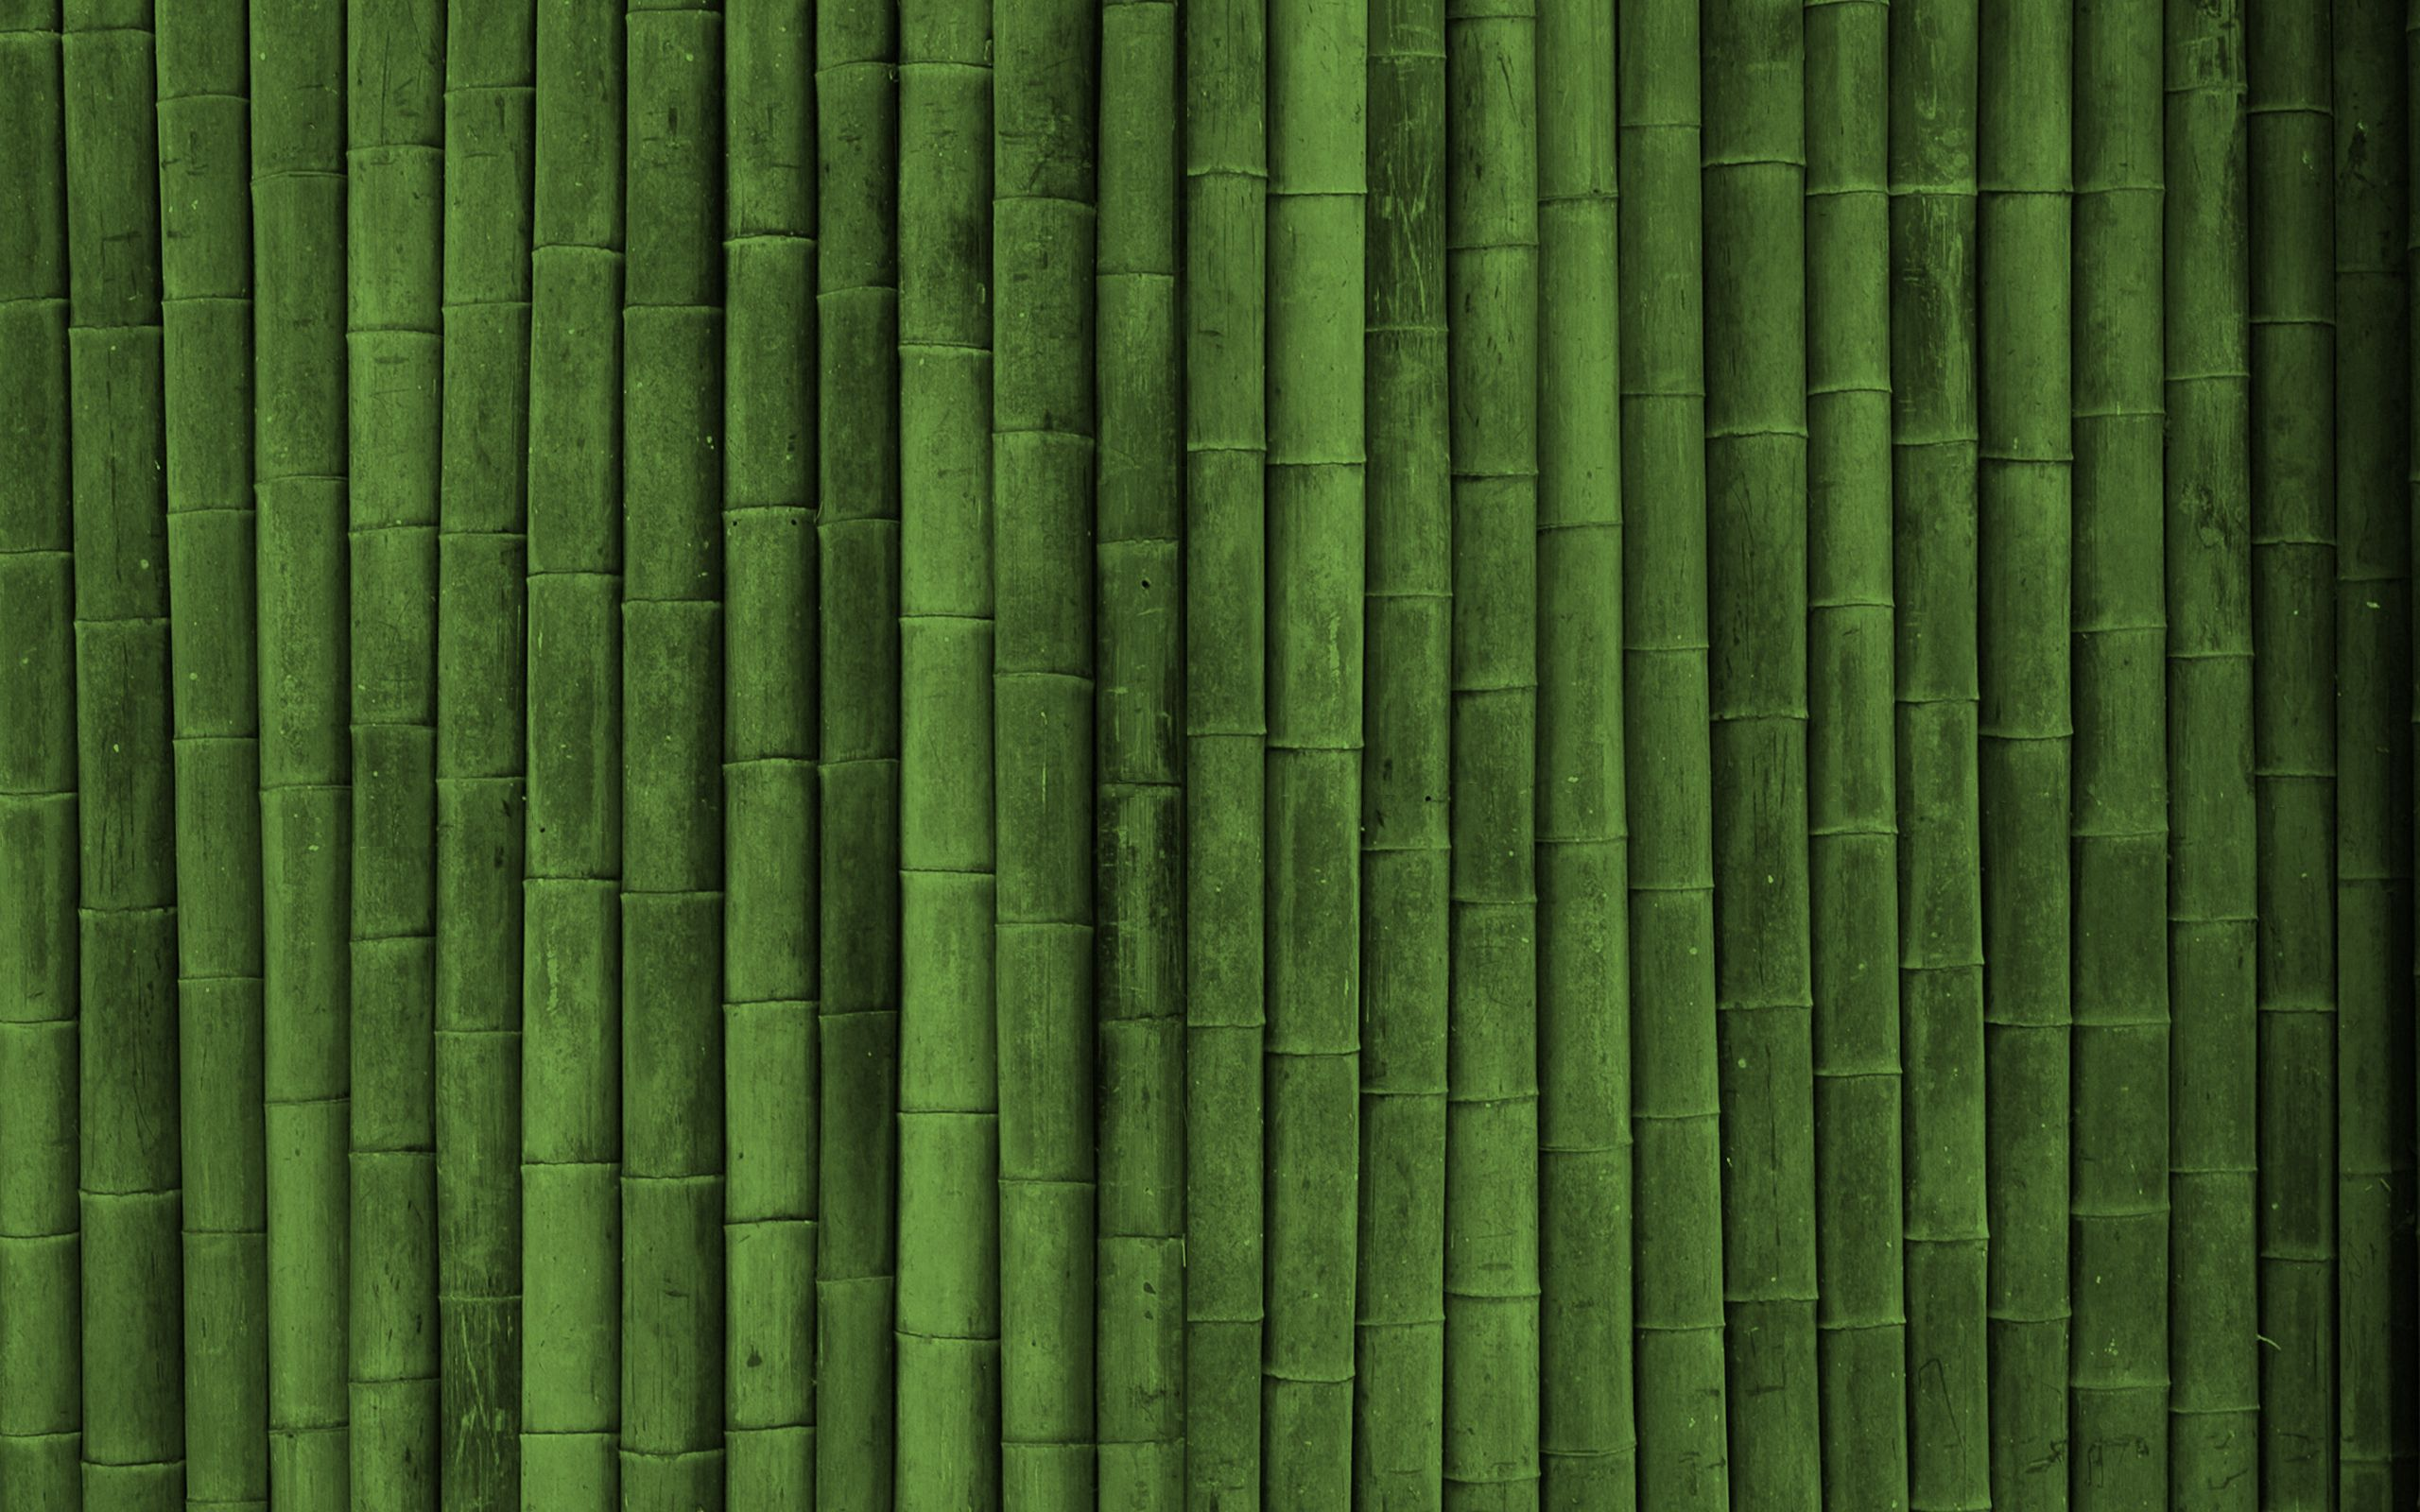 90499 download wallpaper Textures, Texture, Bamboo, Sticks, Stick, Vertical screensavers and pictures for free